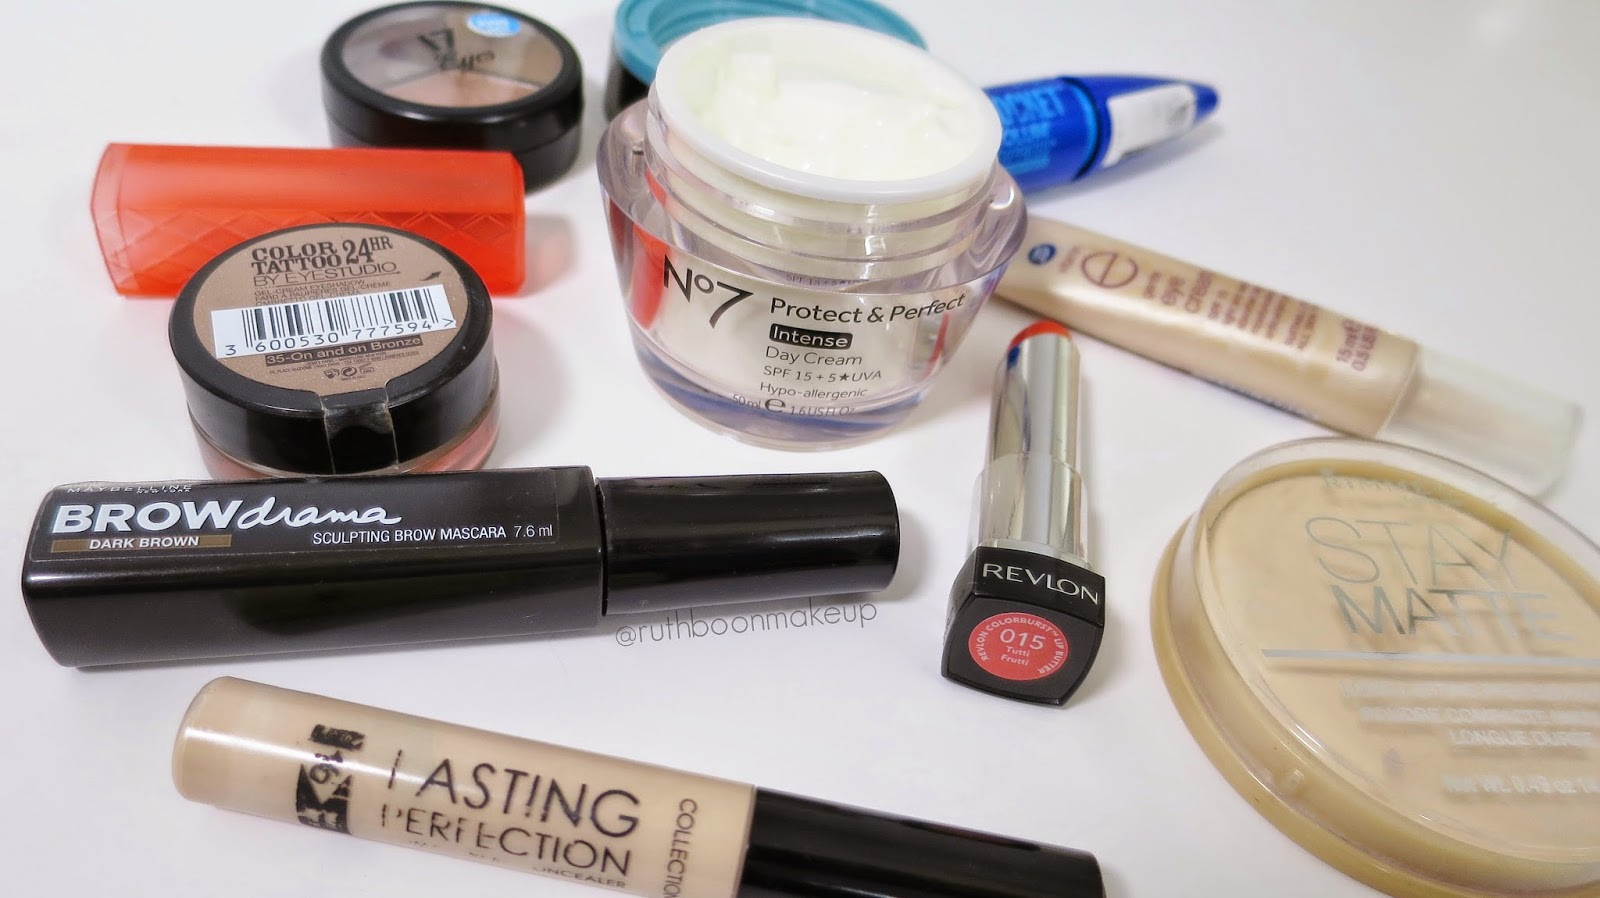 Ruth Boon Lazy Day Makeup